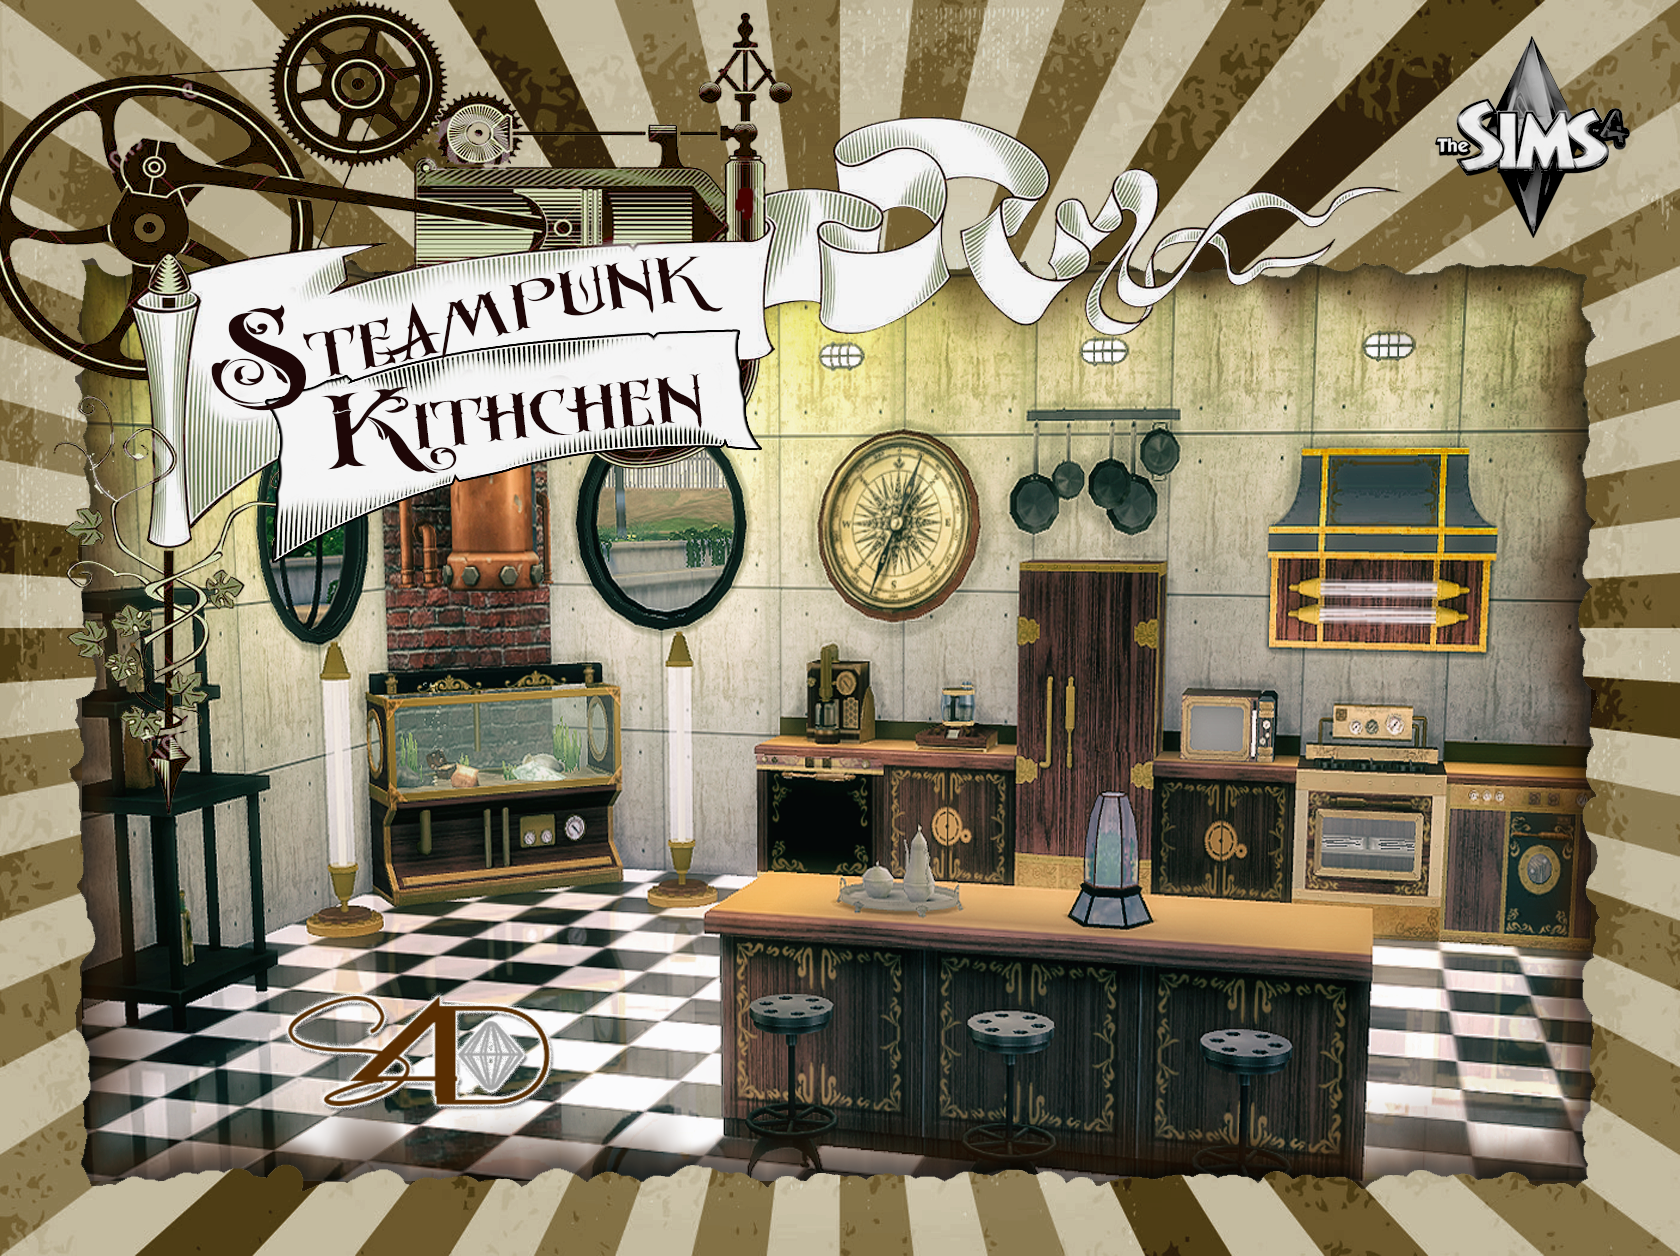 Steampunk Kitchen